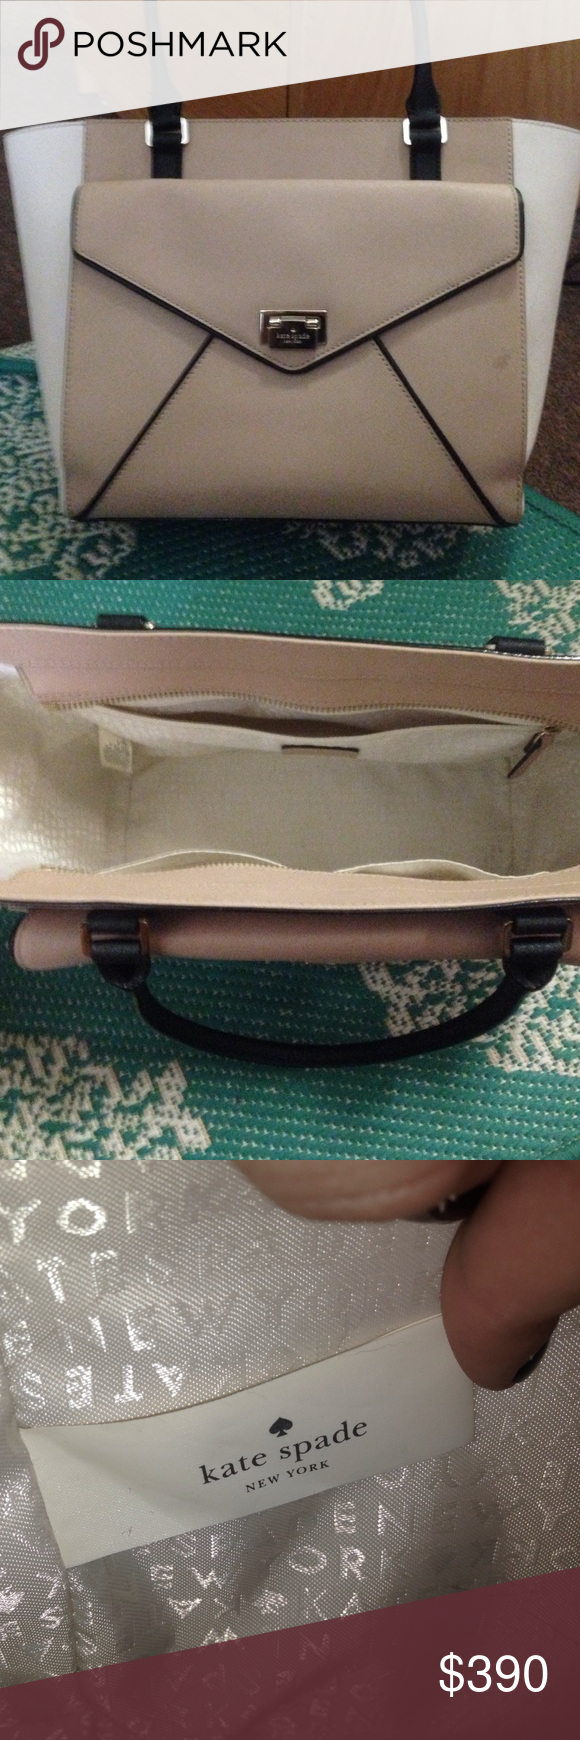 Kate spade tote Kate spade purse tote size. Only used a hand full of times. Just not a good size for my liking. No stains, pet free smoke free home. Great condition!! Love the style! Price always negotiable. kate spade Bags